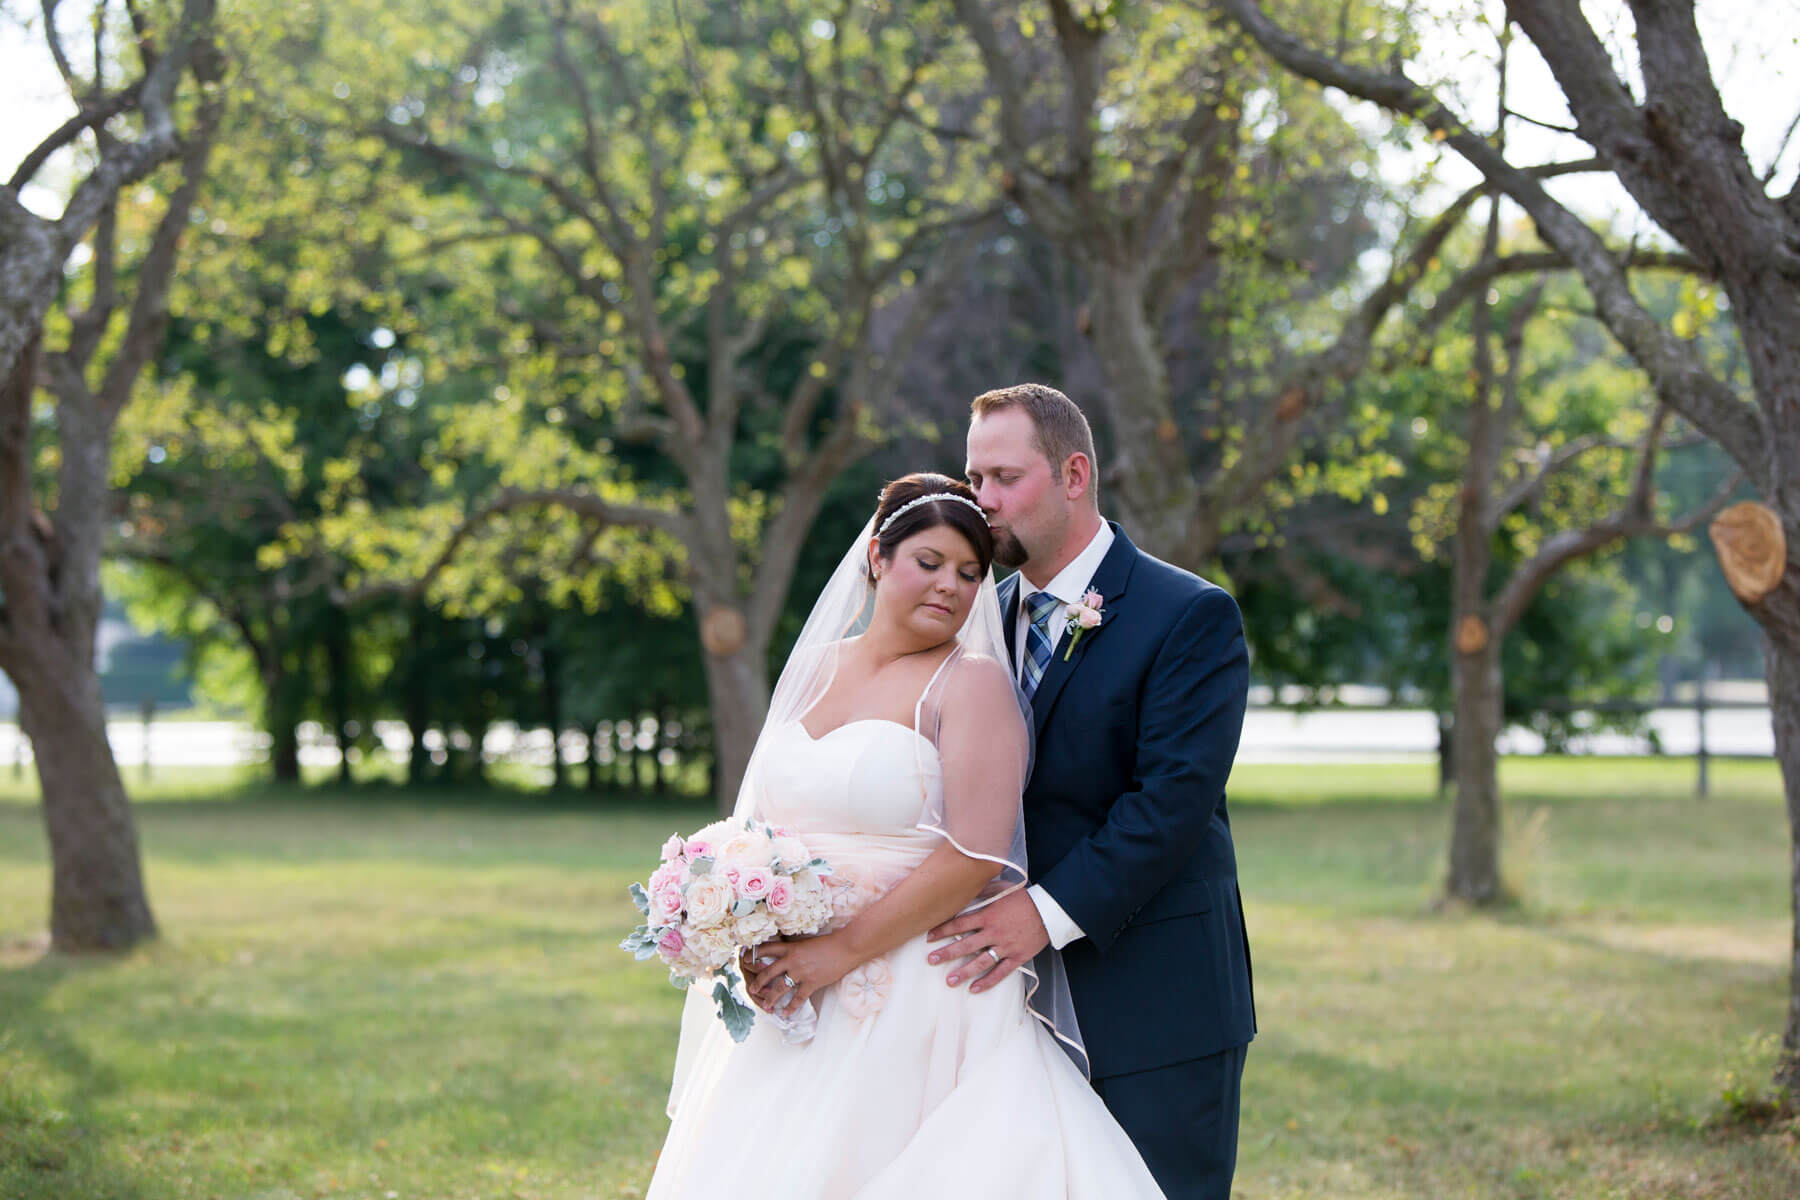 Lindsey + Andrew - When you know, you know. And Lindsey + Andrew knew the moment they met. Take a look inside their glam wedding.